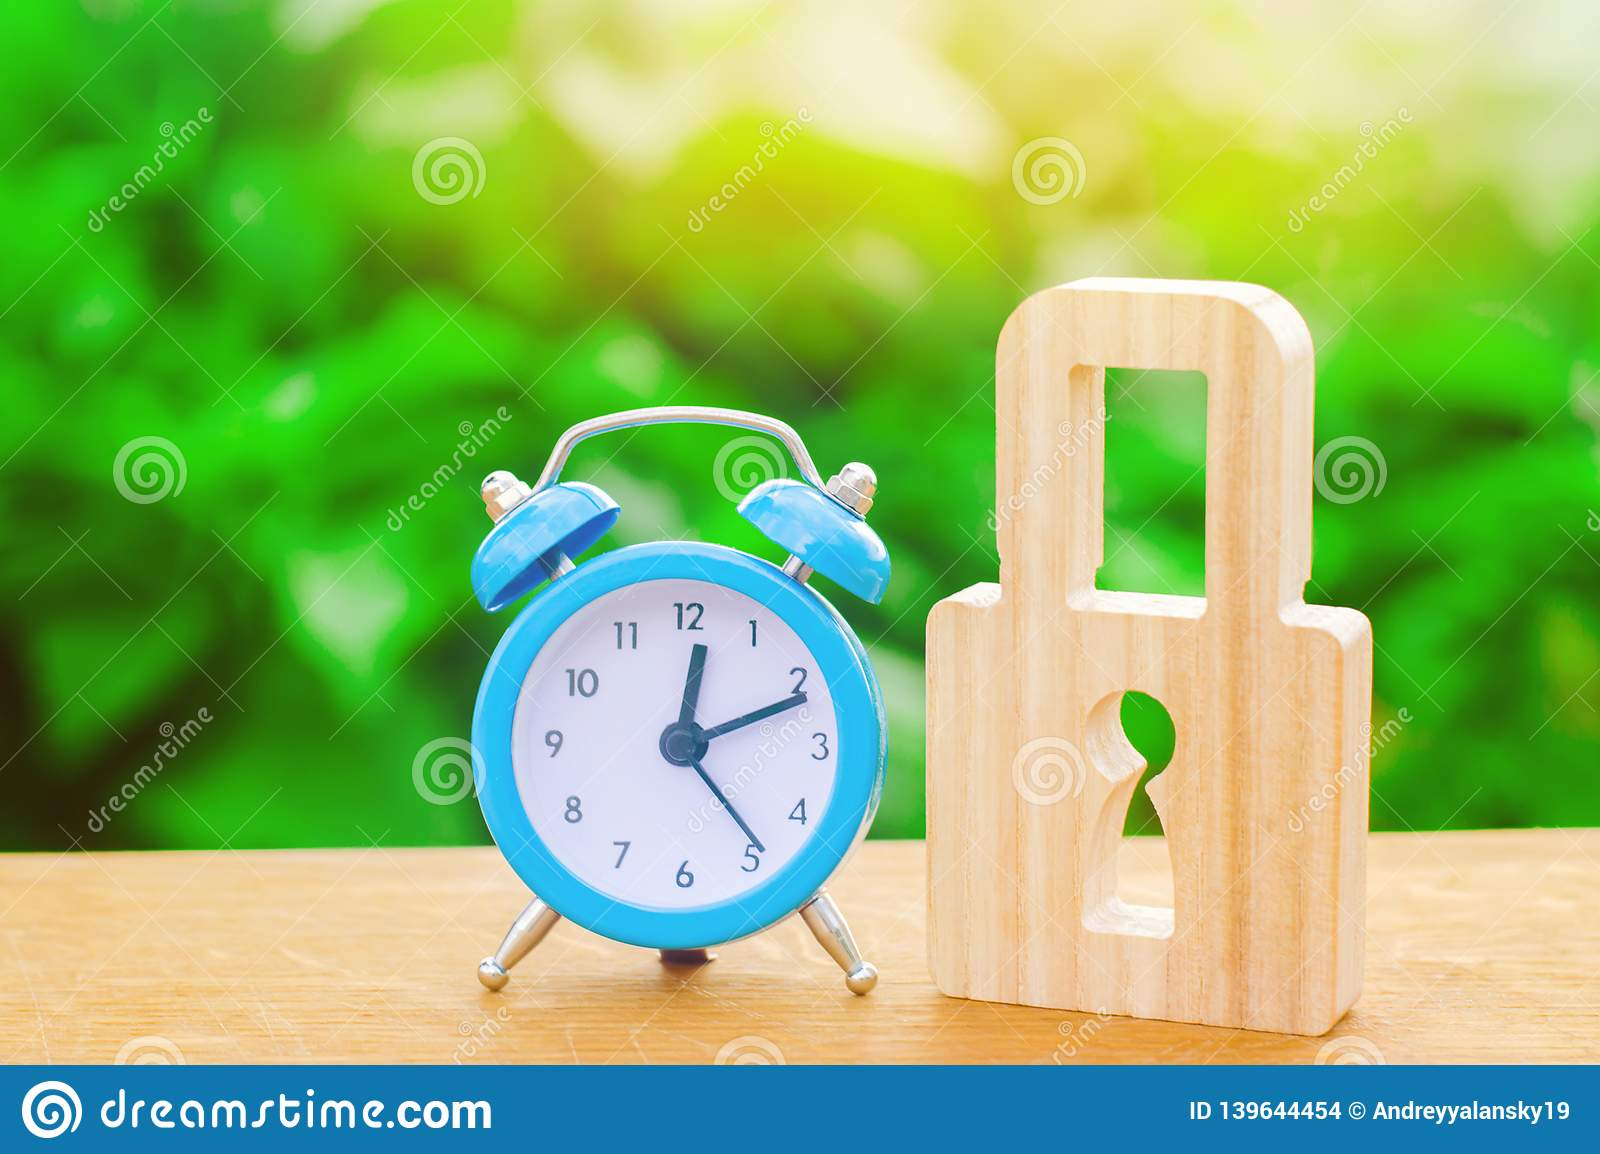 Blue alarm clock and padlock. Non-durable protection time-tested protection and stability. Saving time. The concept of a temporary